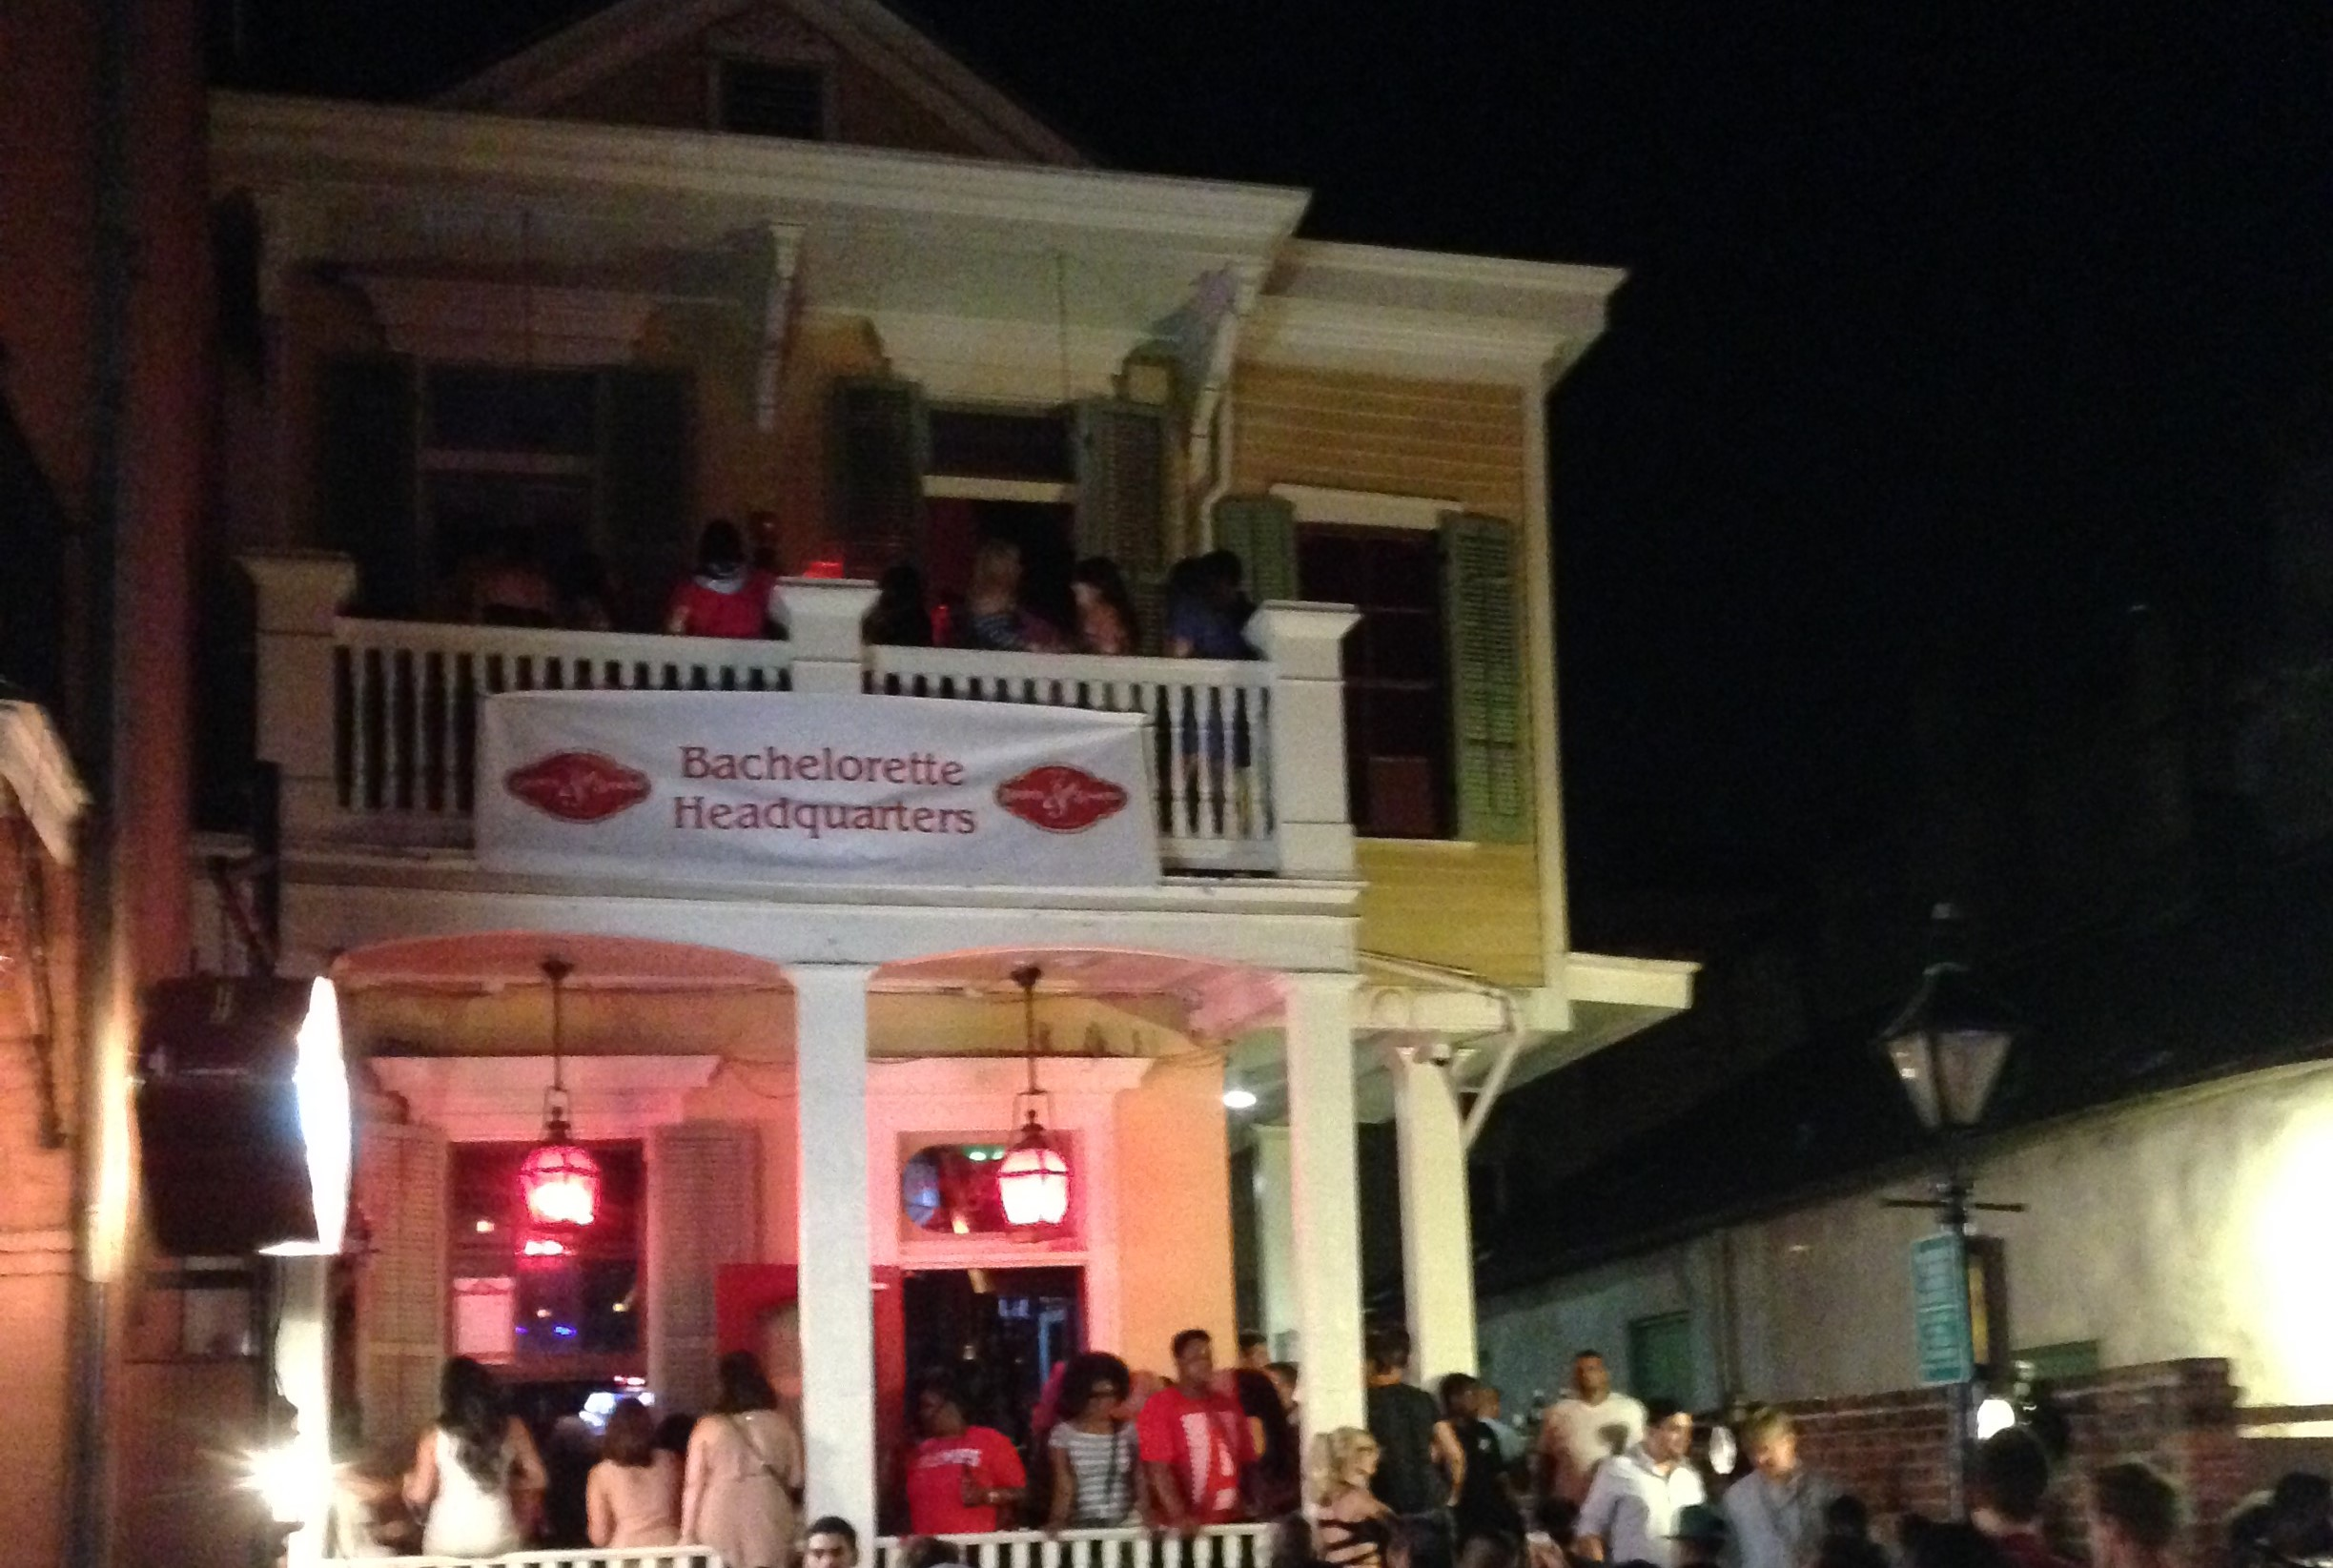 The party keeps going after the Mardi Gras parades on Bourbon Street.